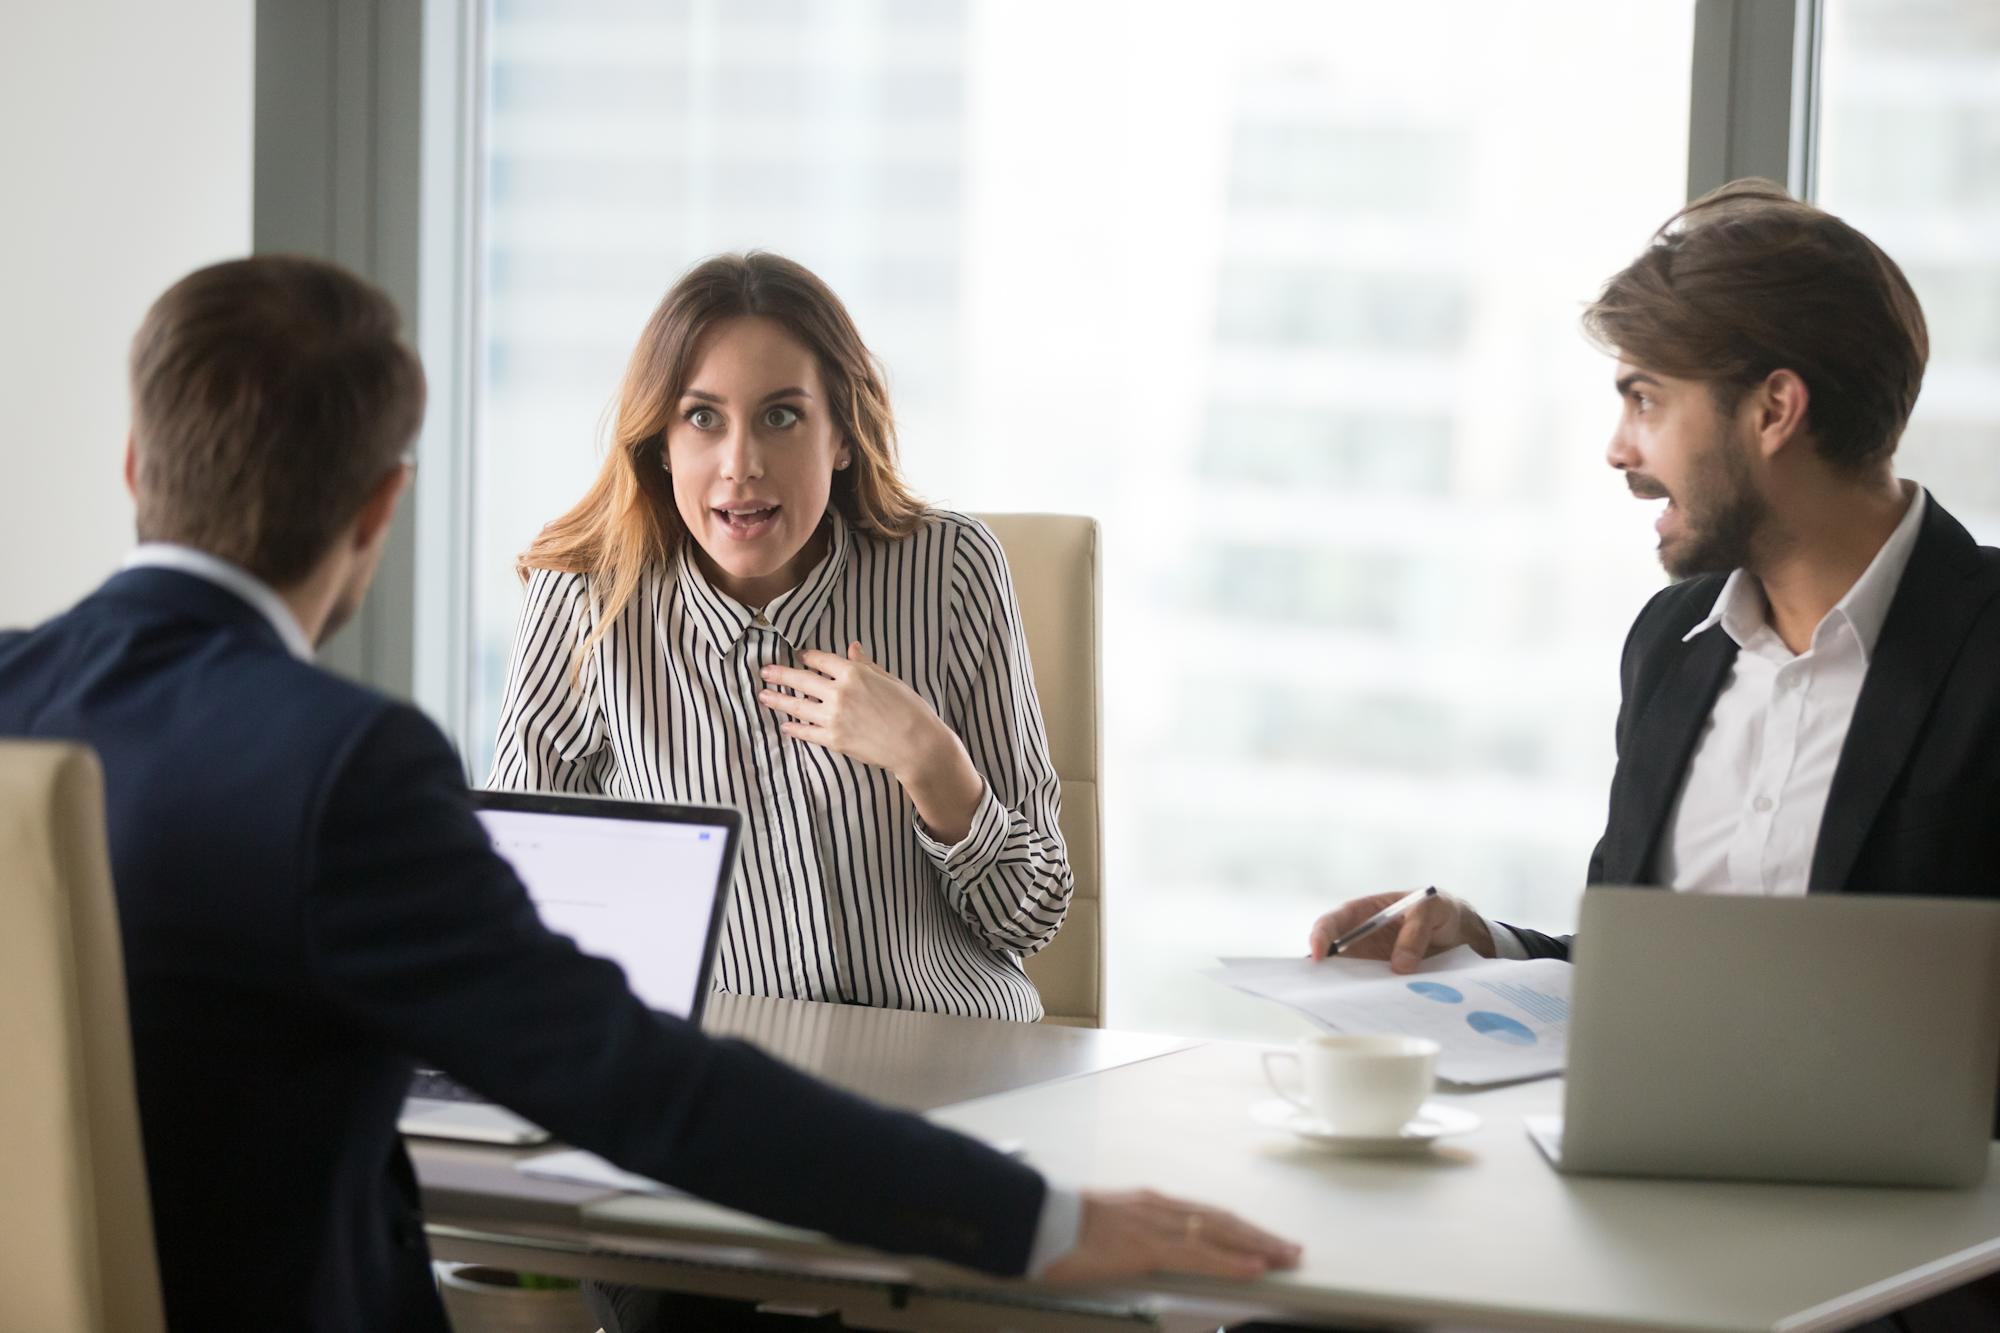 Women less likely to get their ideas endorsed at work than men